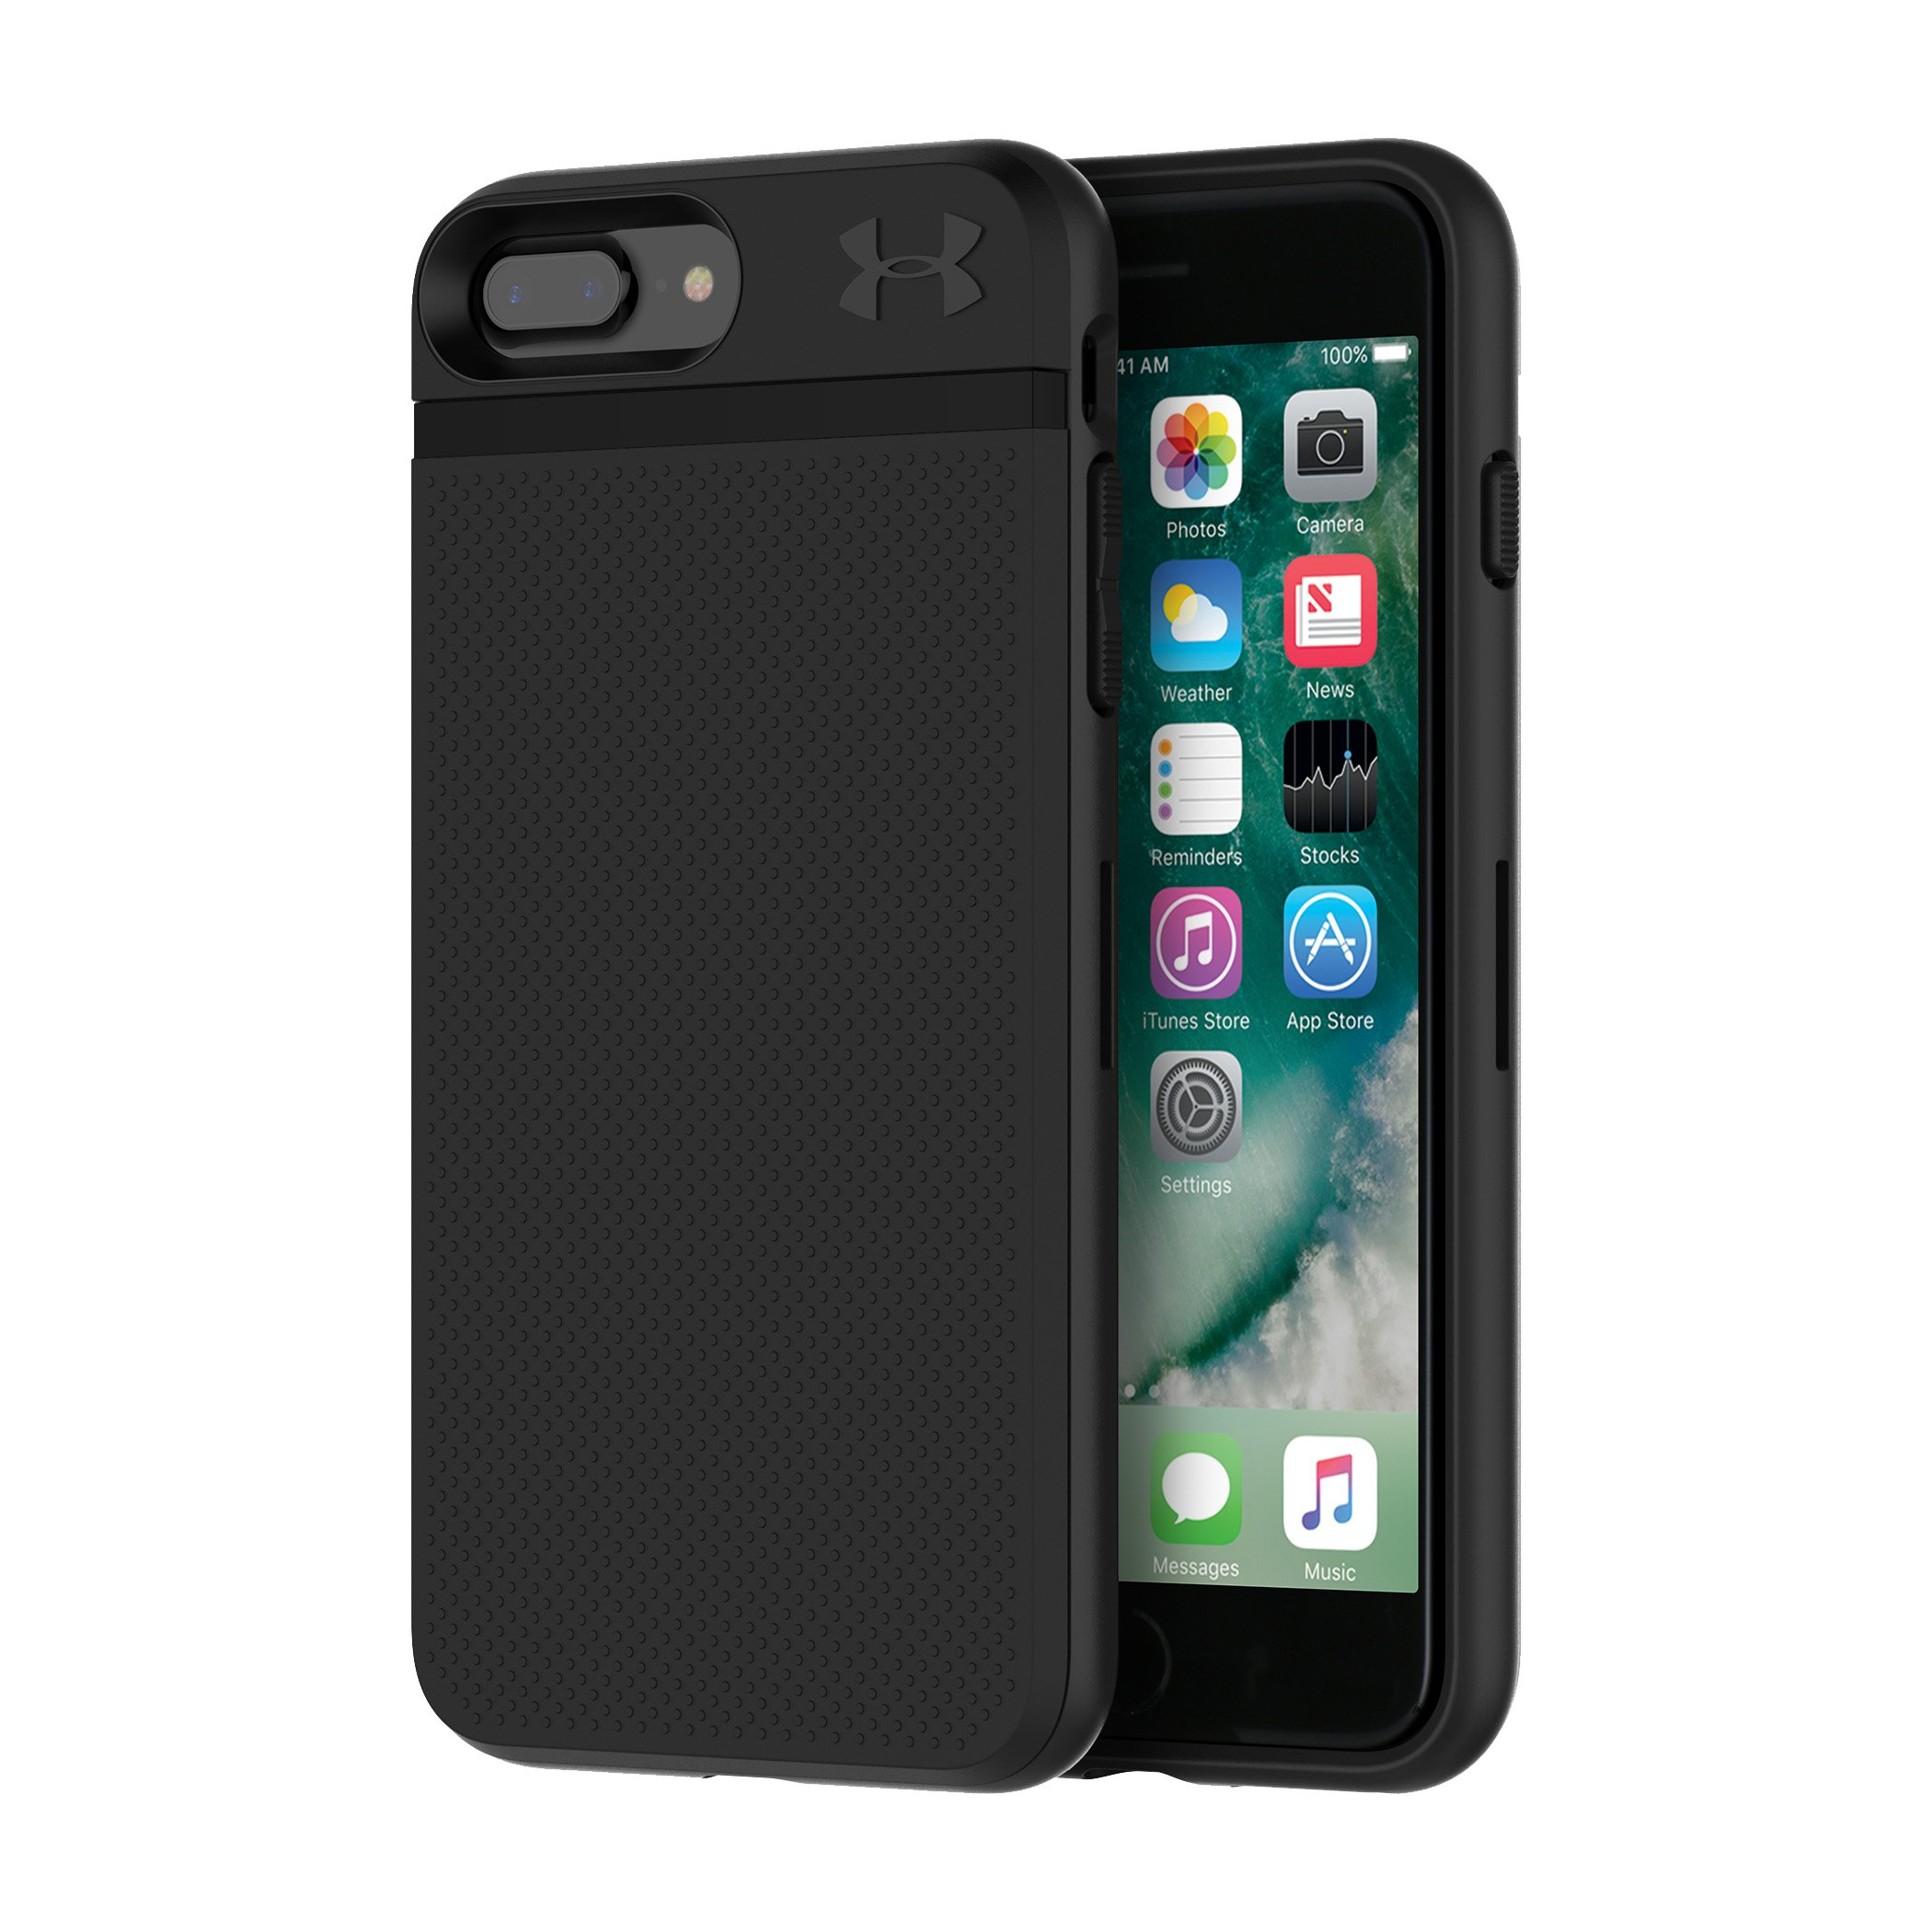 slick cases UA Protect Stash Case for iPhone 8 Plus/7 Plus <strong>Sleek</strong>, slim case design perfect for everyday use.